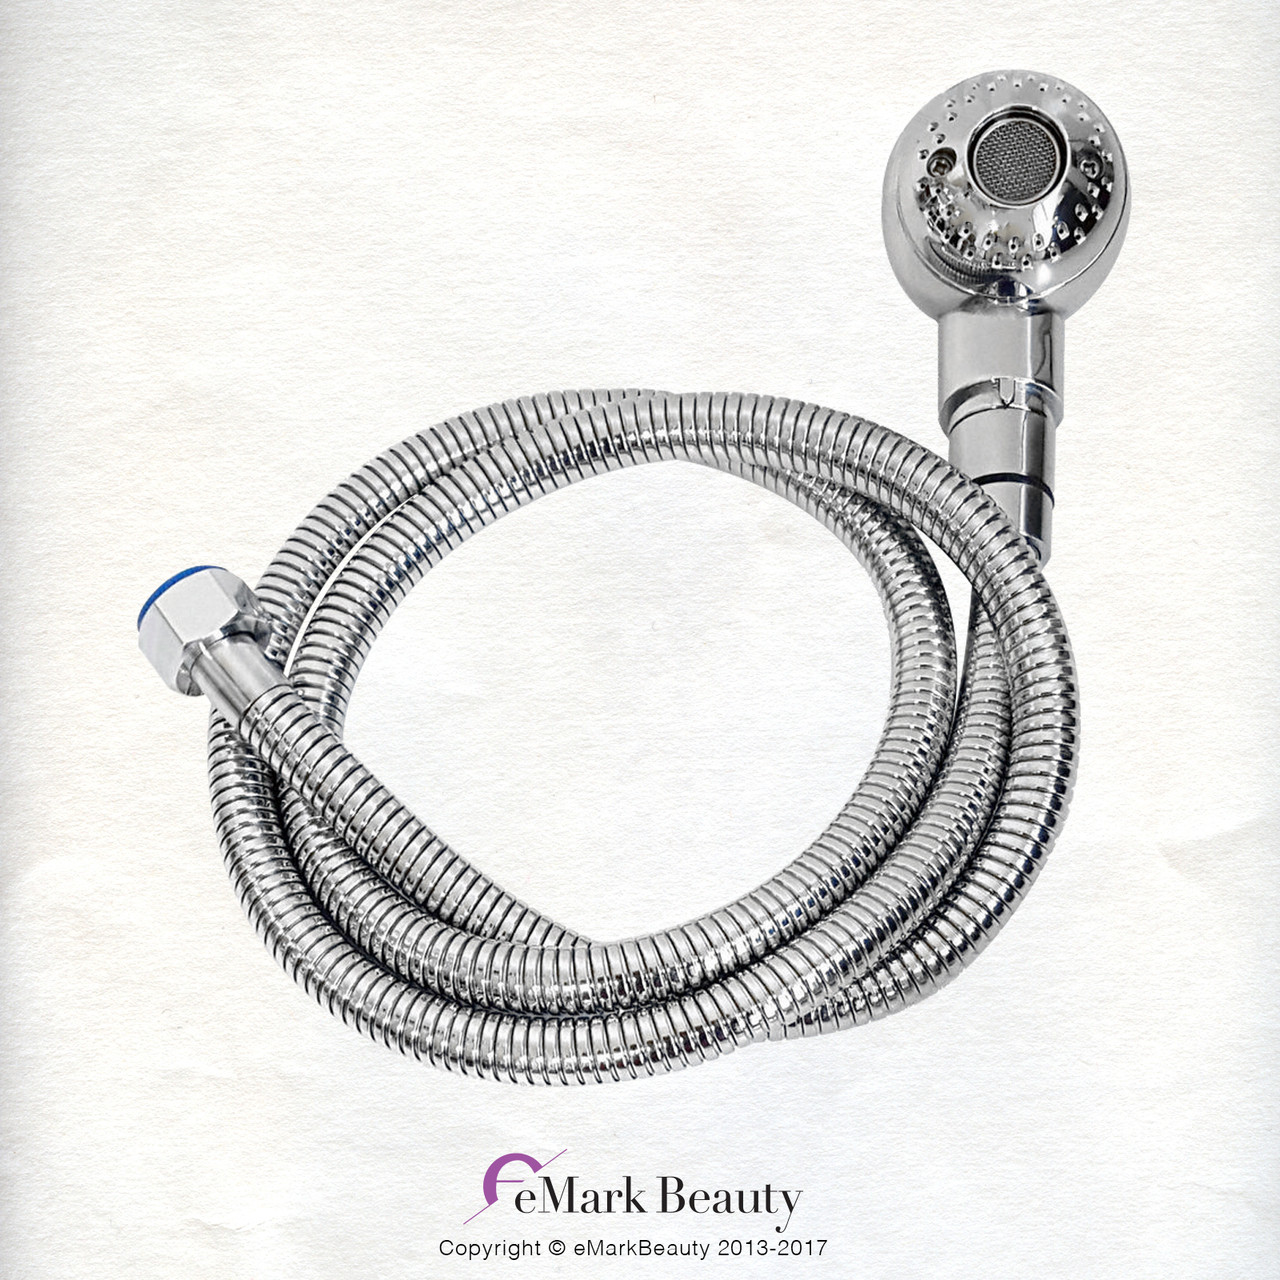 plumbing parts kit diverter spray hose chrome faucet for use with shampoo bowls with small gel neck rest tlc 1164dhg